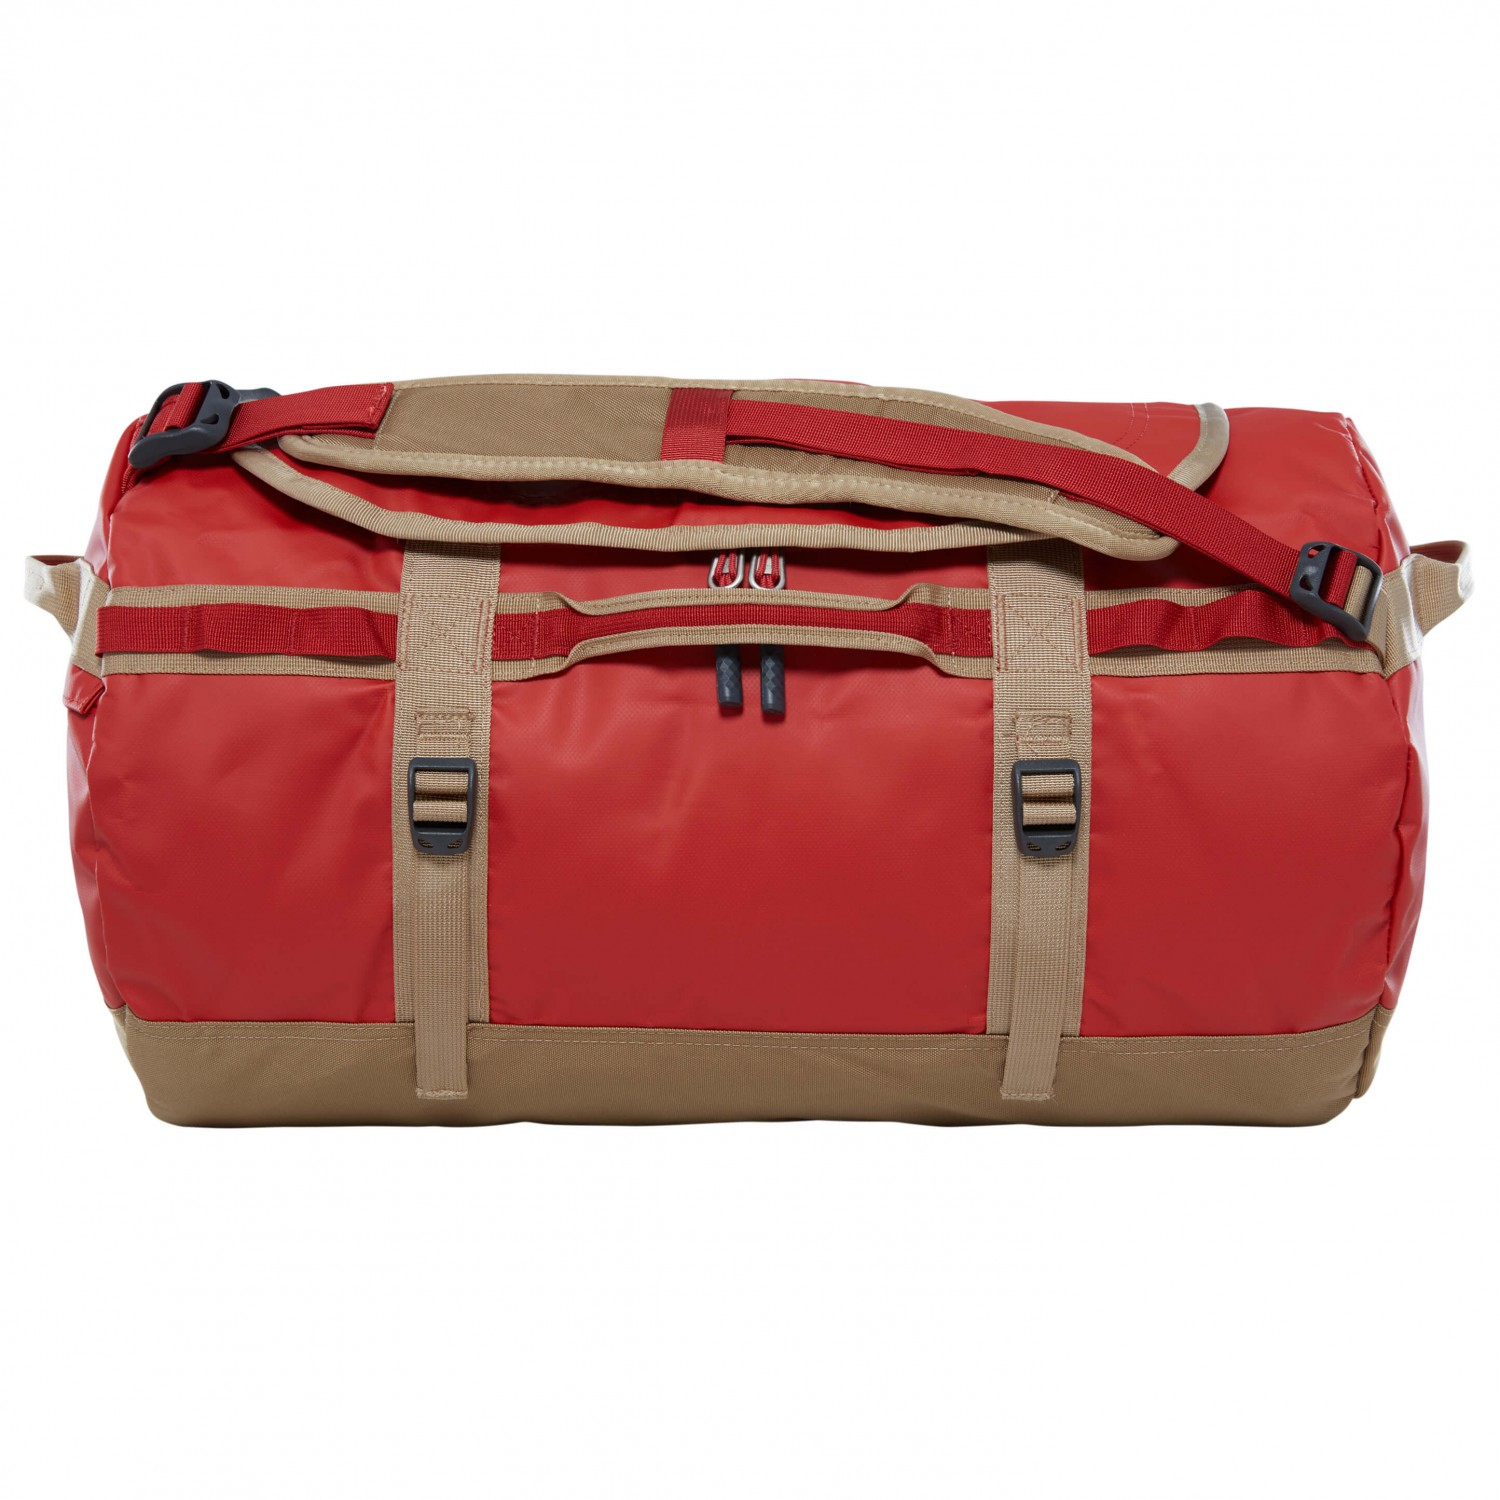 Tour Red Duffel Small Sac De Sport zvVNEI